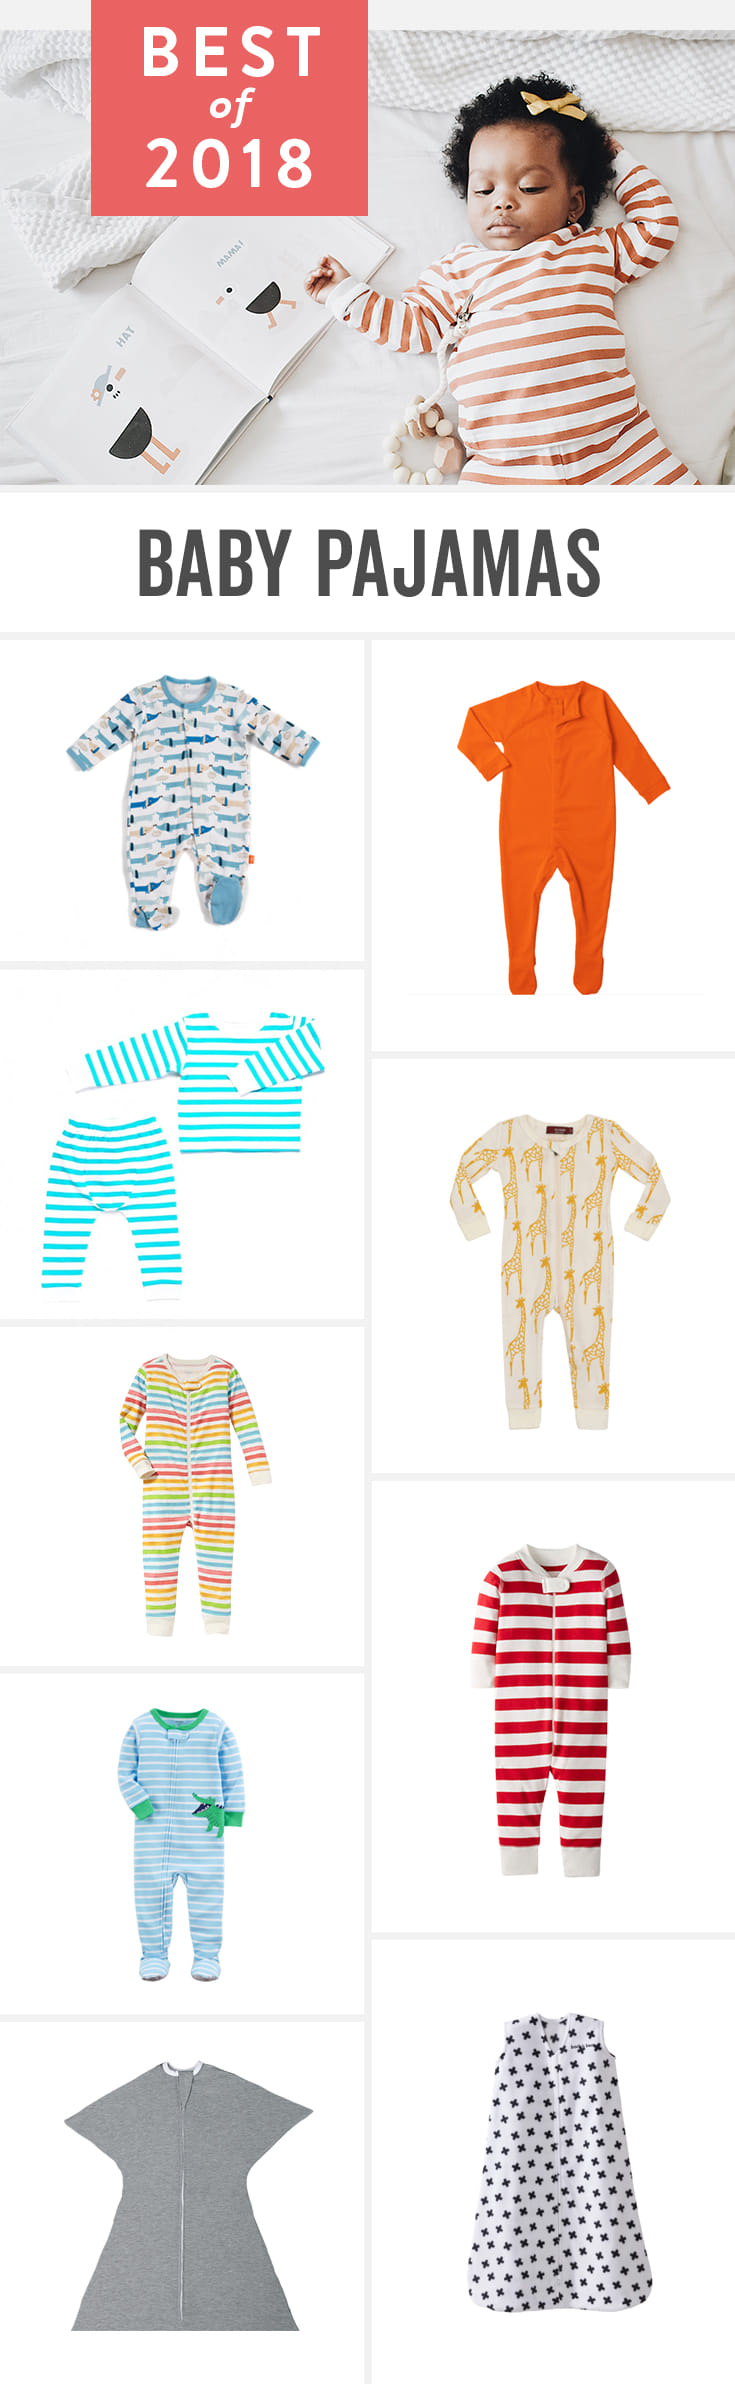 Babylist is the baby registry that lets you add any item from any store to one beautiful registry including the best baby pajamas. Great picks for newborn, one piece, and winter and summer. From cute animal PJs to gender neutral basics it's all here.